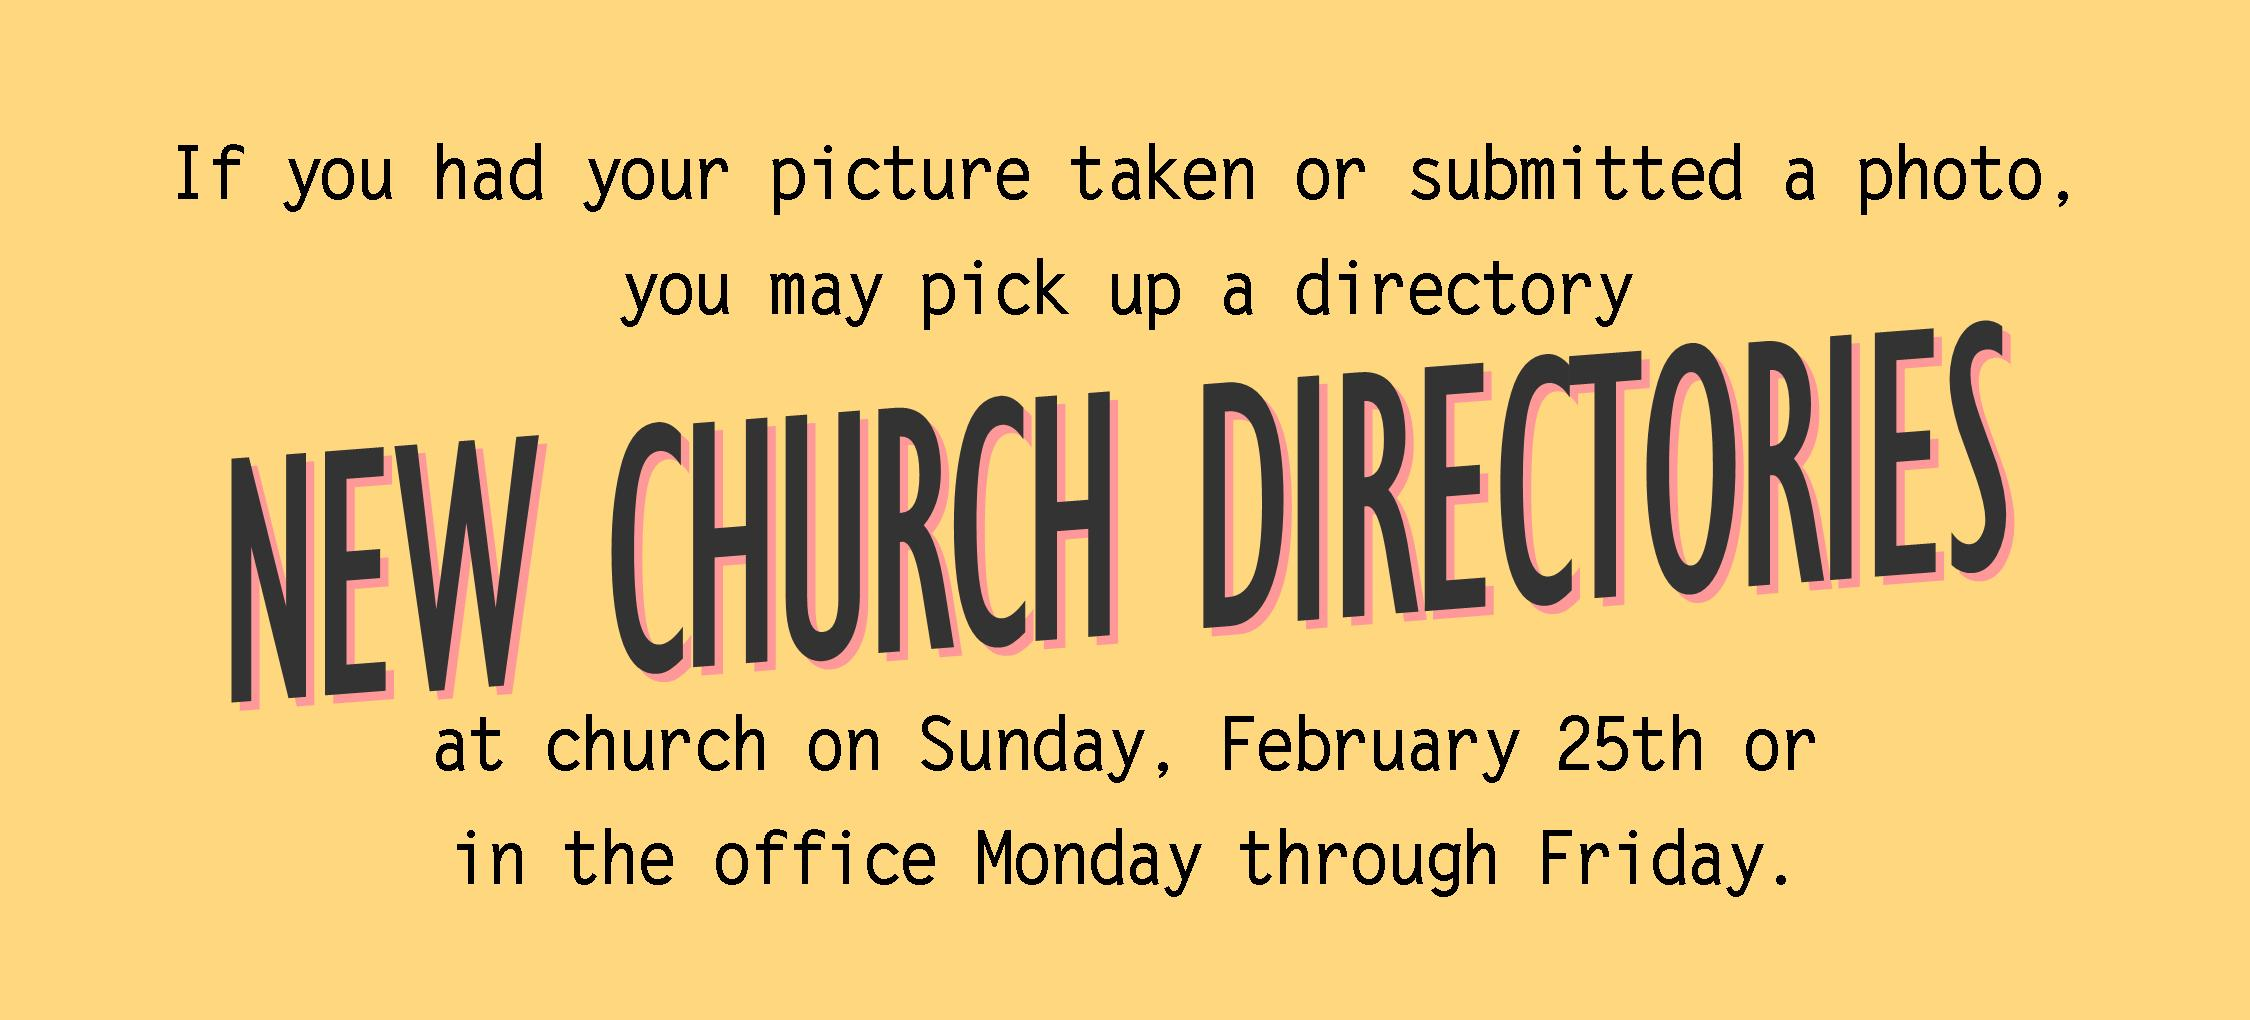 church directories 022318.jpg